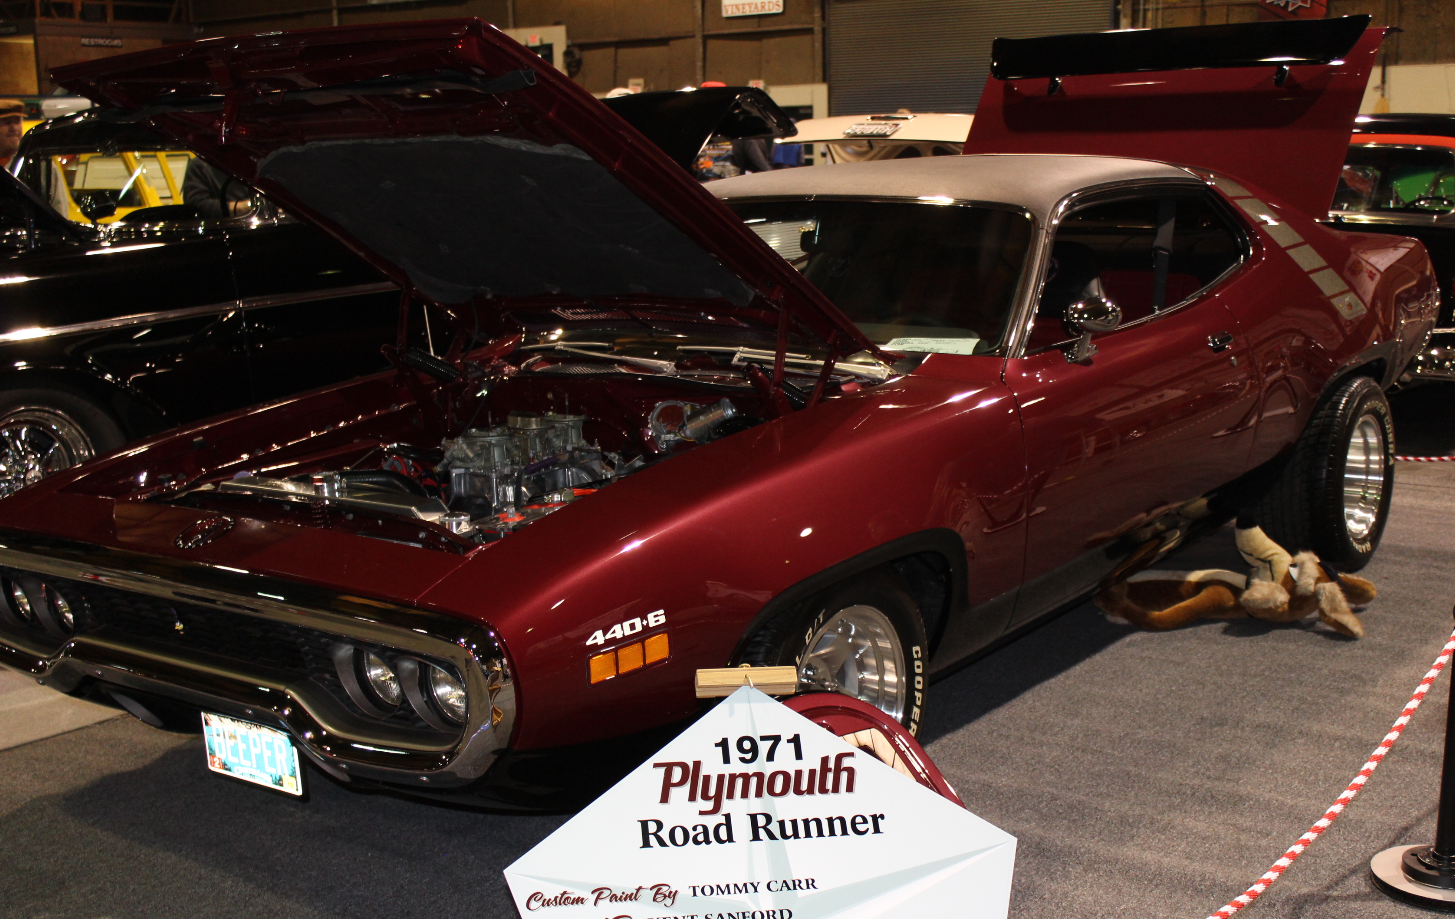 1971 Pymouth Road Runner